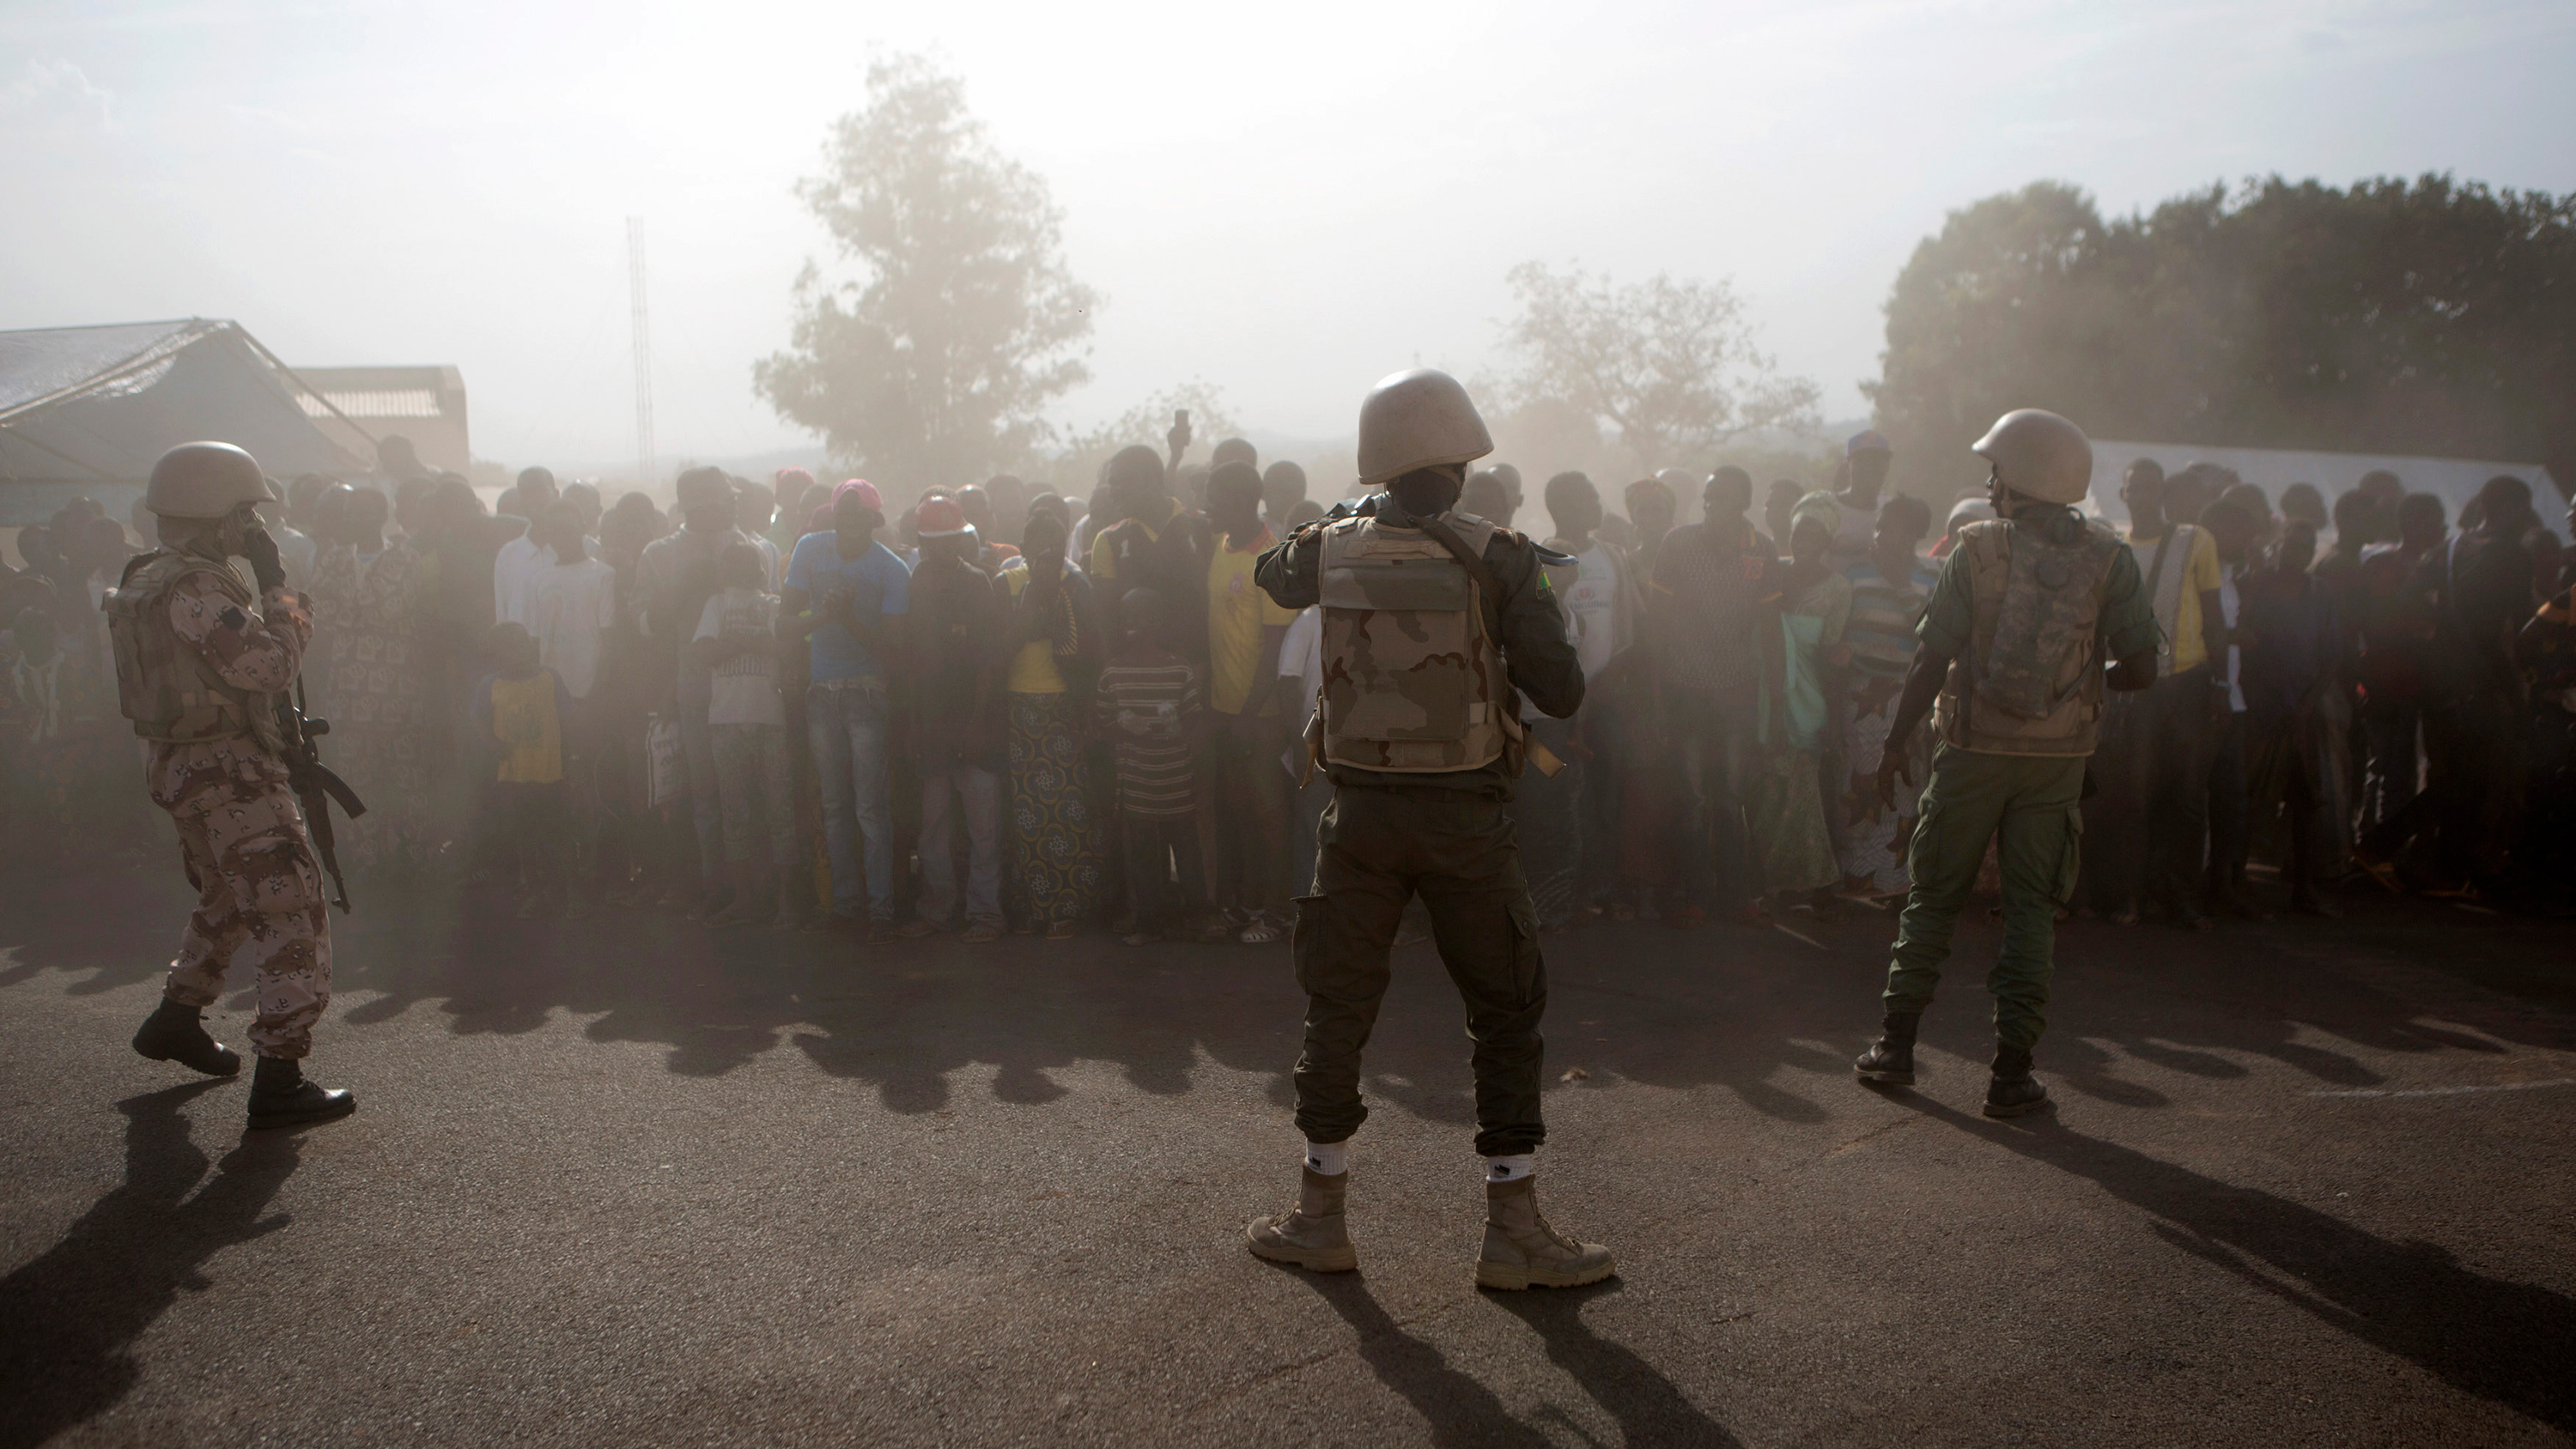 he picture shows a large crowd shrouded in what appears to be early morning mist with a thin line of heavily armed soldiers wearing combat fatigues standing between them and the camera.